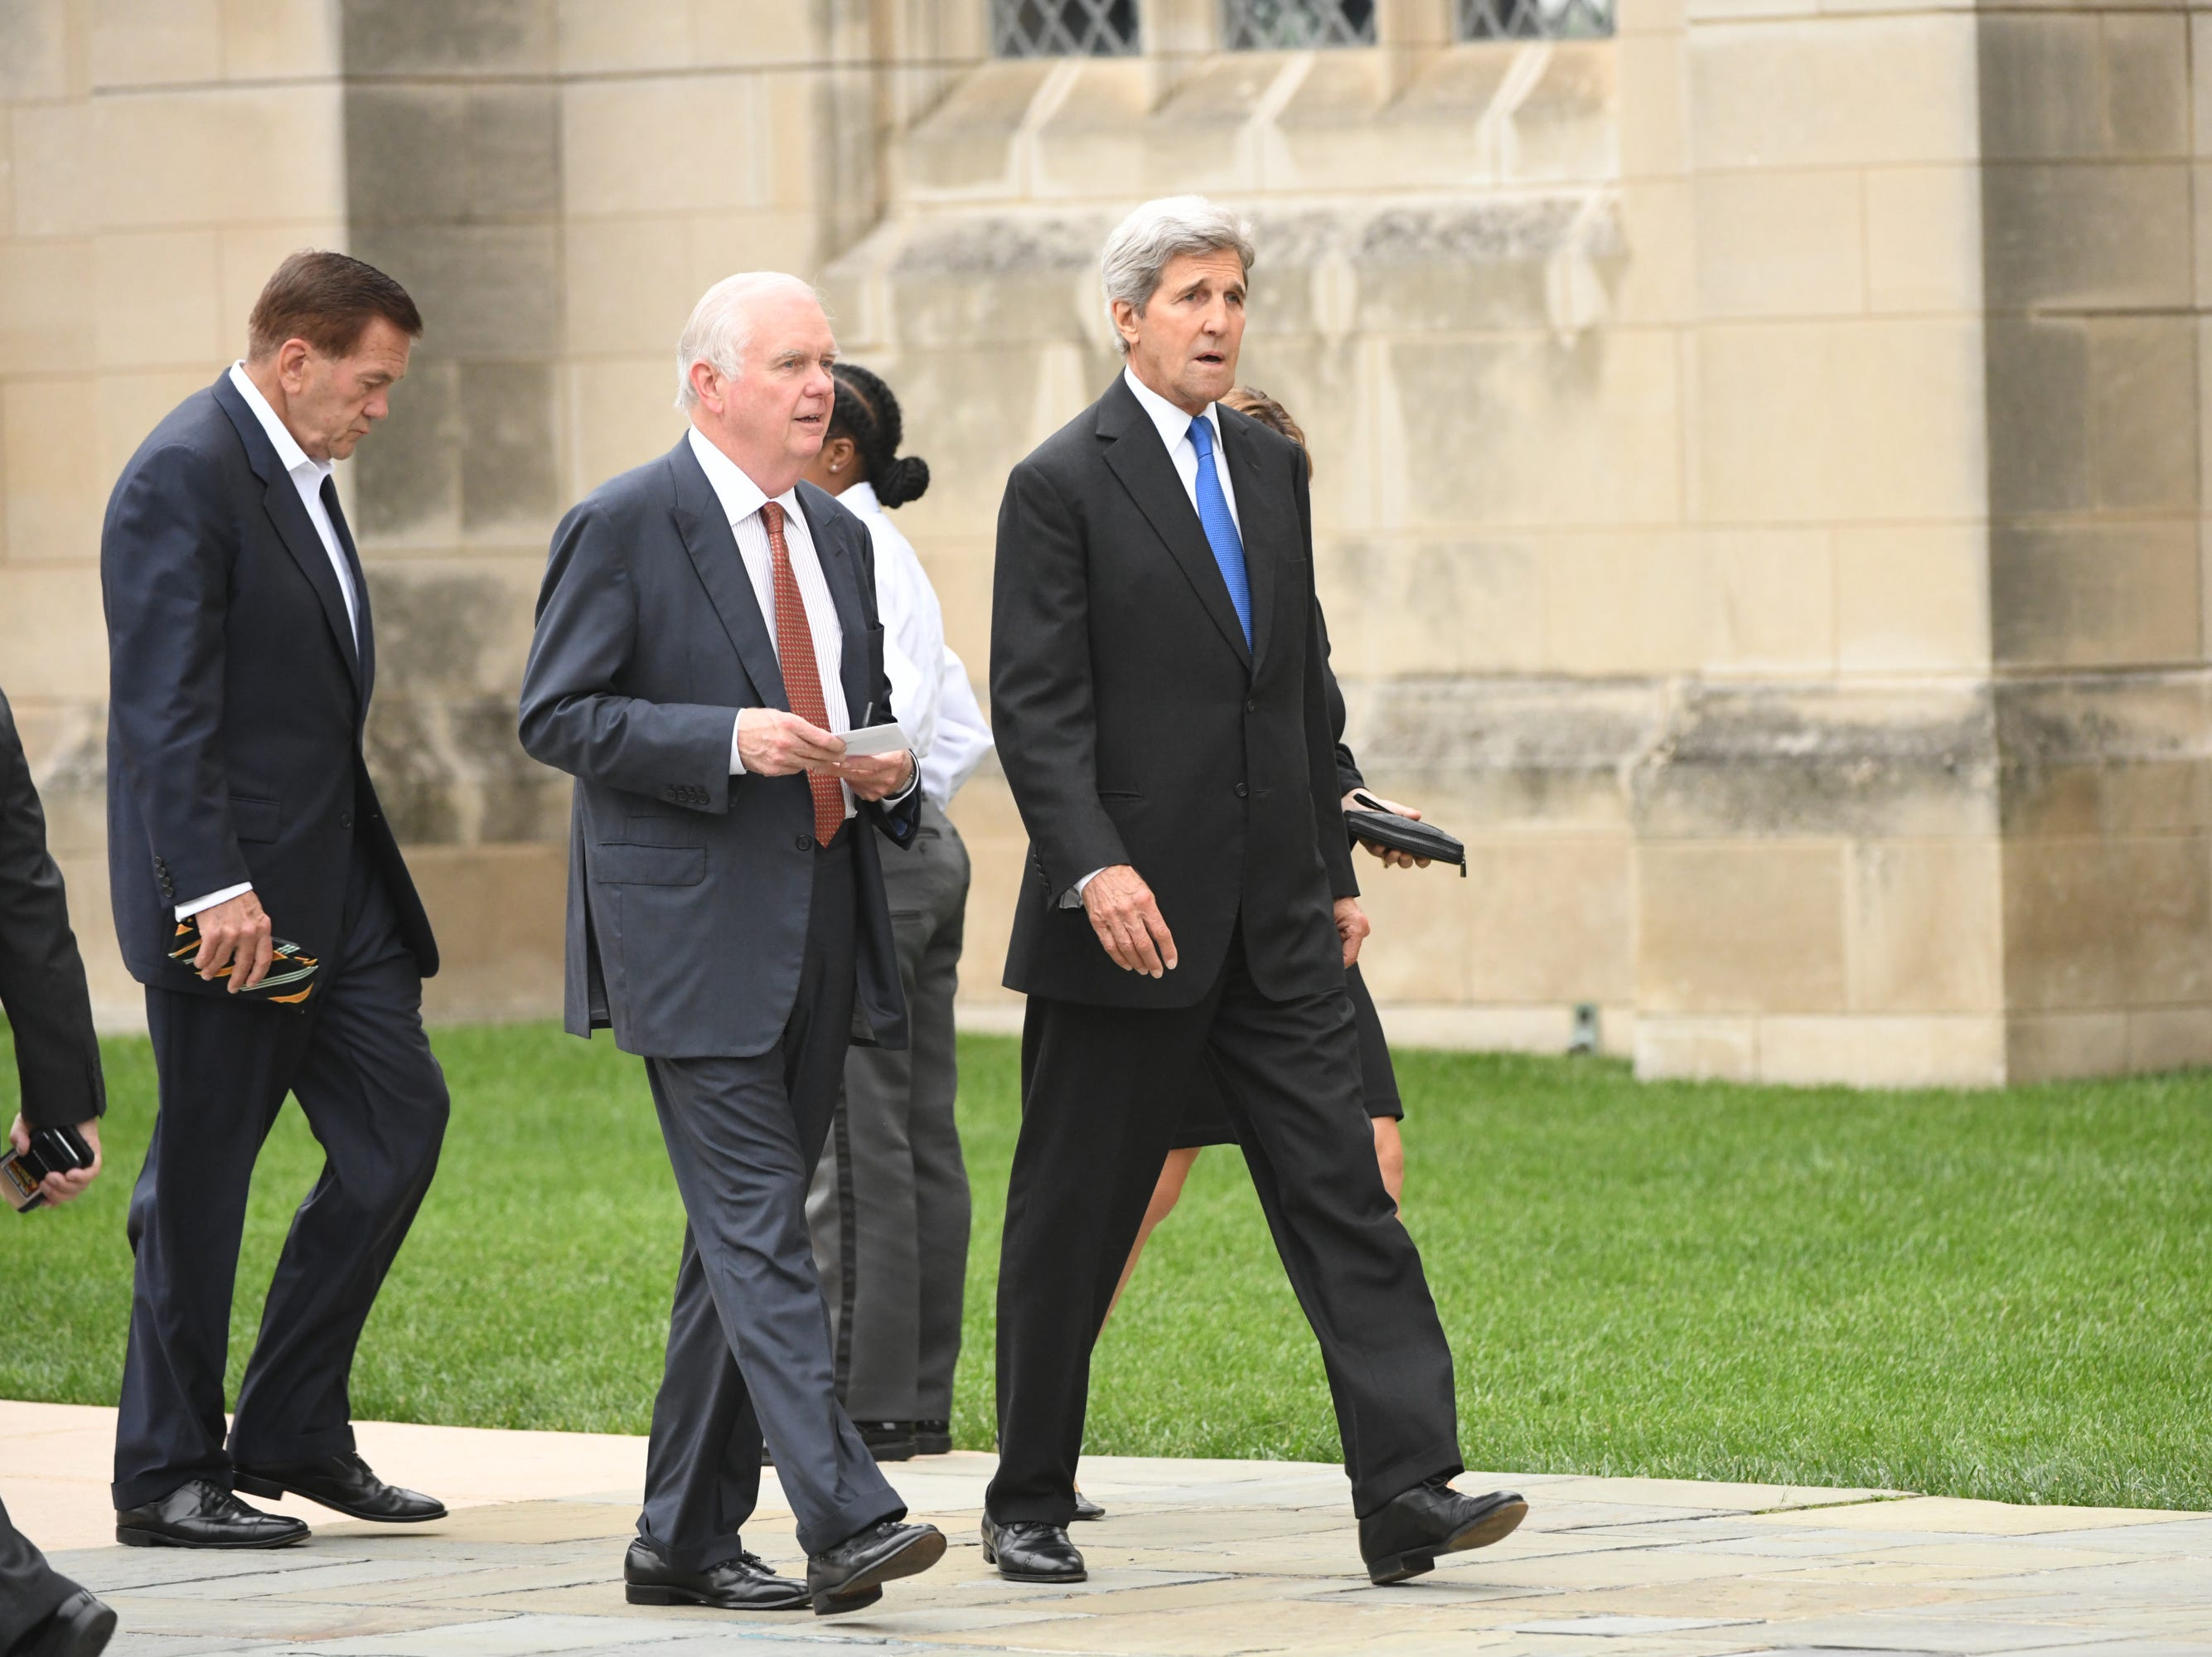 John Kerry arrives at the National Cathedral in Washington for a memorial service for John McCain on Sept. 1, 2018. Sen. McCain on Sept. 1, 2018. Sen. McCain on Aug. 25.